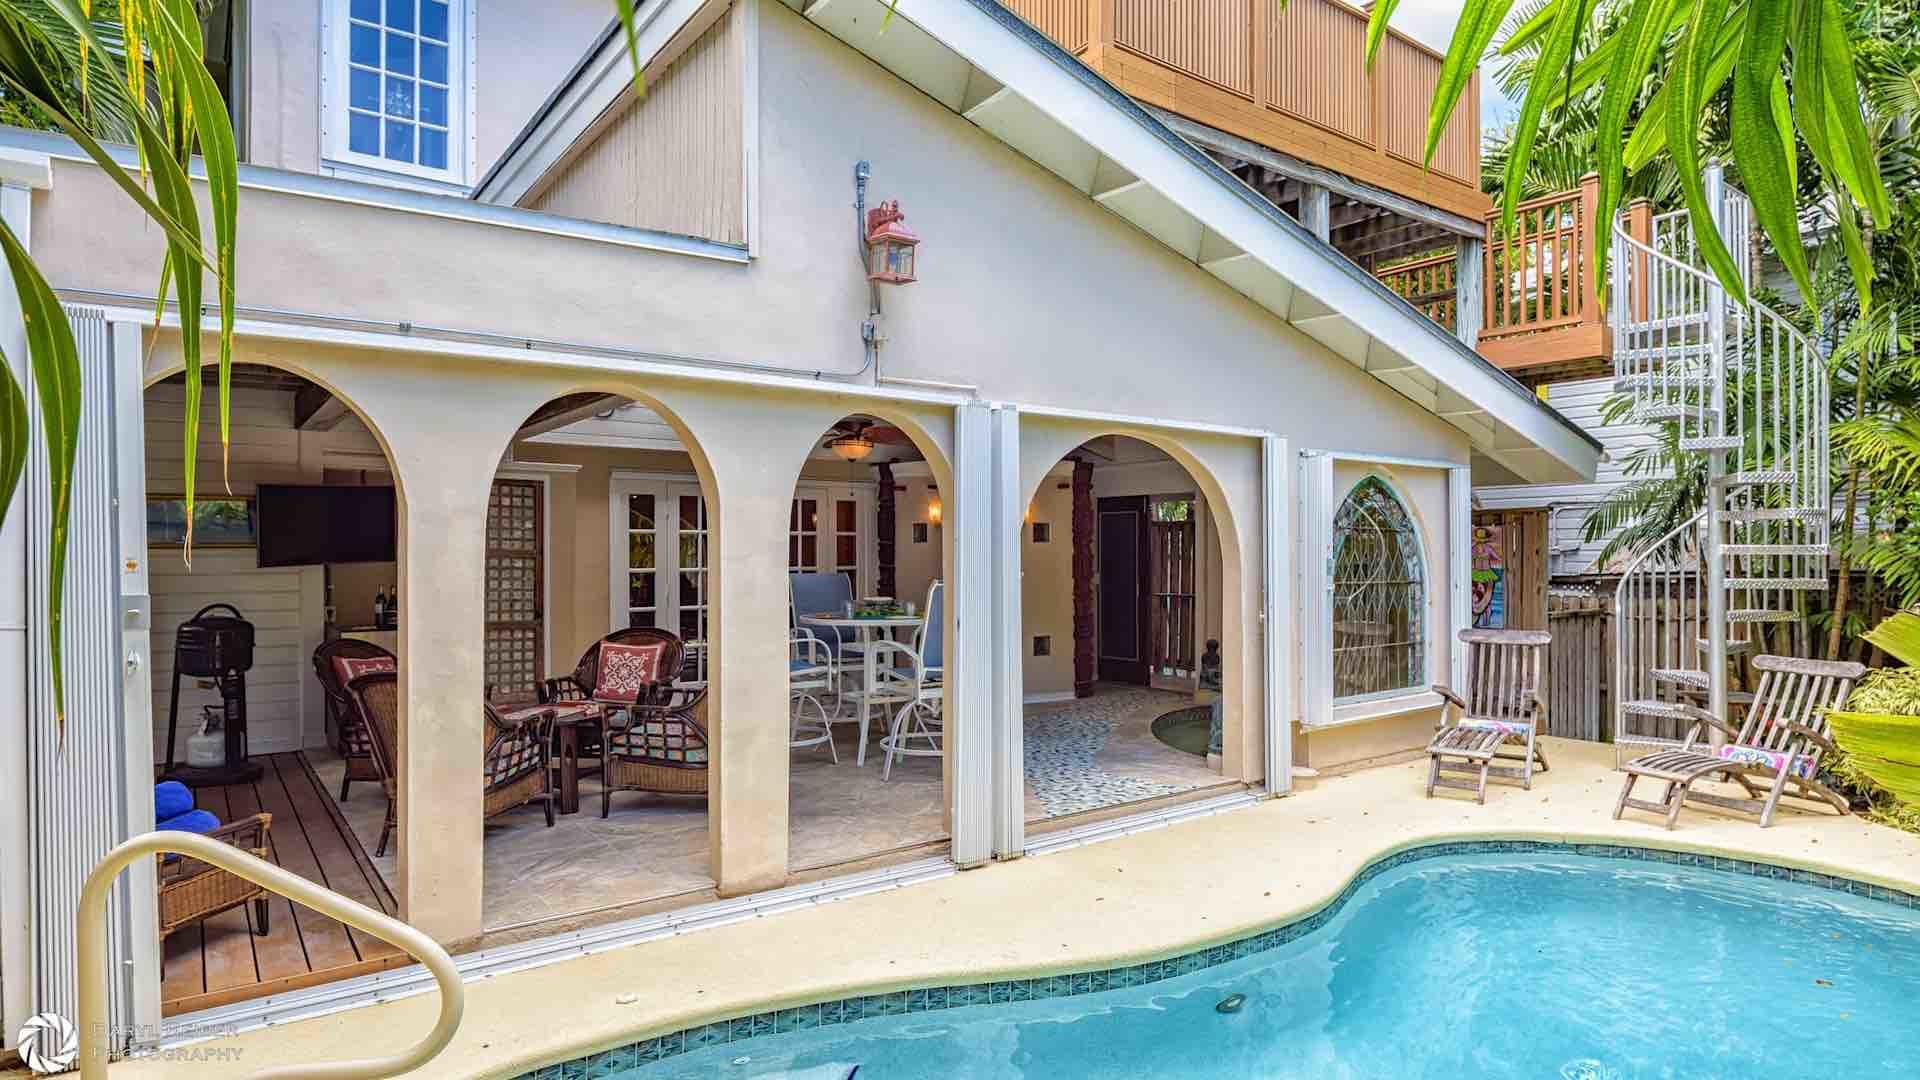 Key West 3 bedroom pet friendly monthly vacation home rental close to the beach and Duval